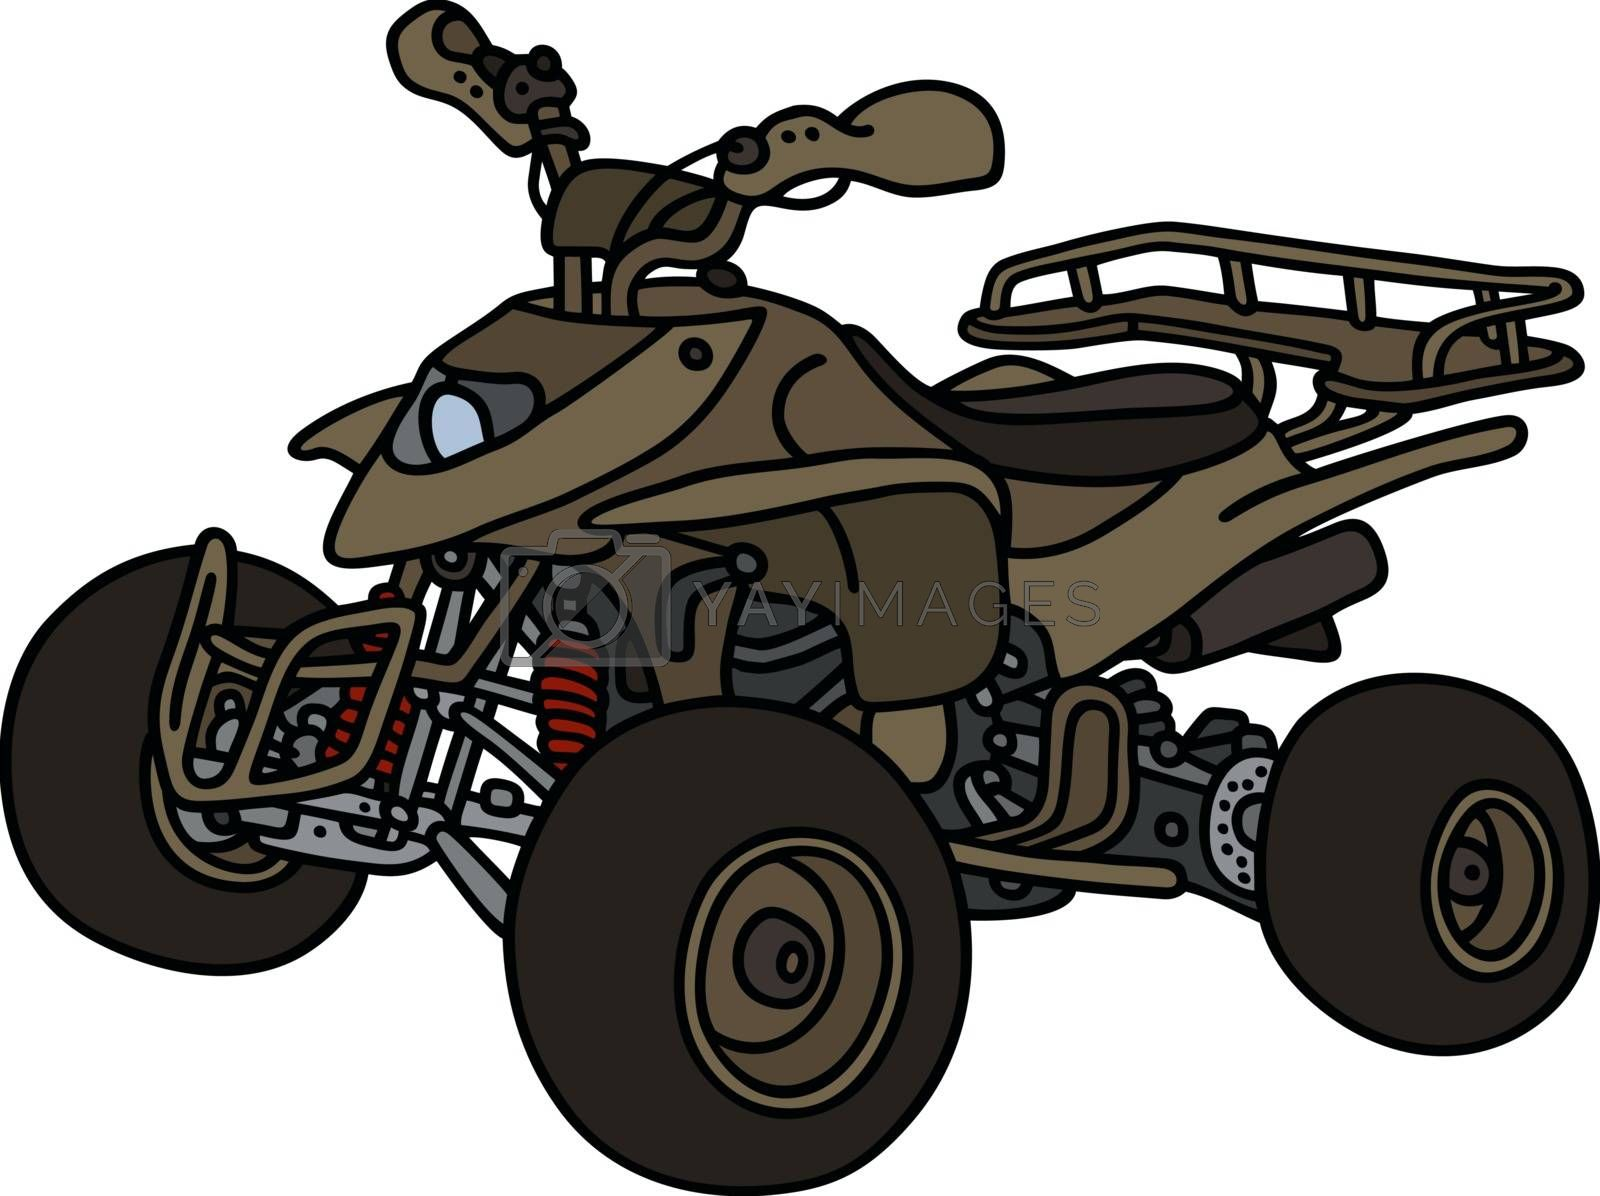 Olive all terrain vehicle by vostal